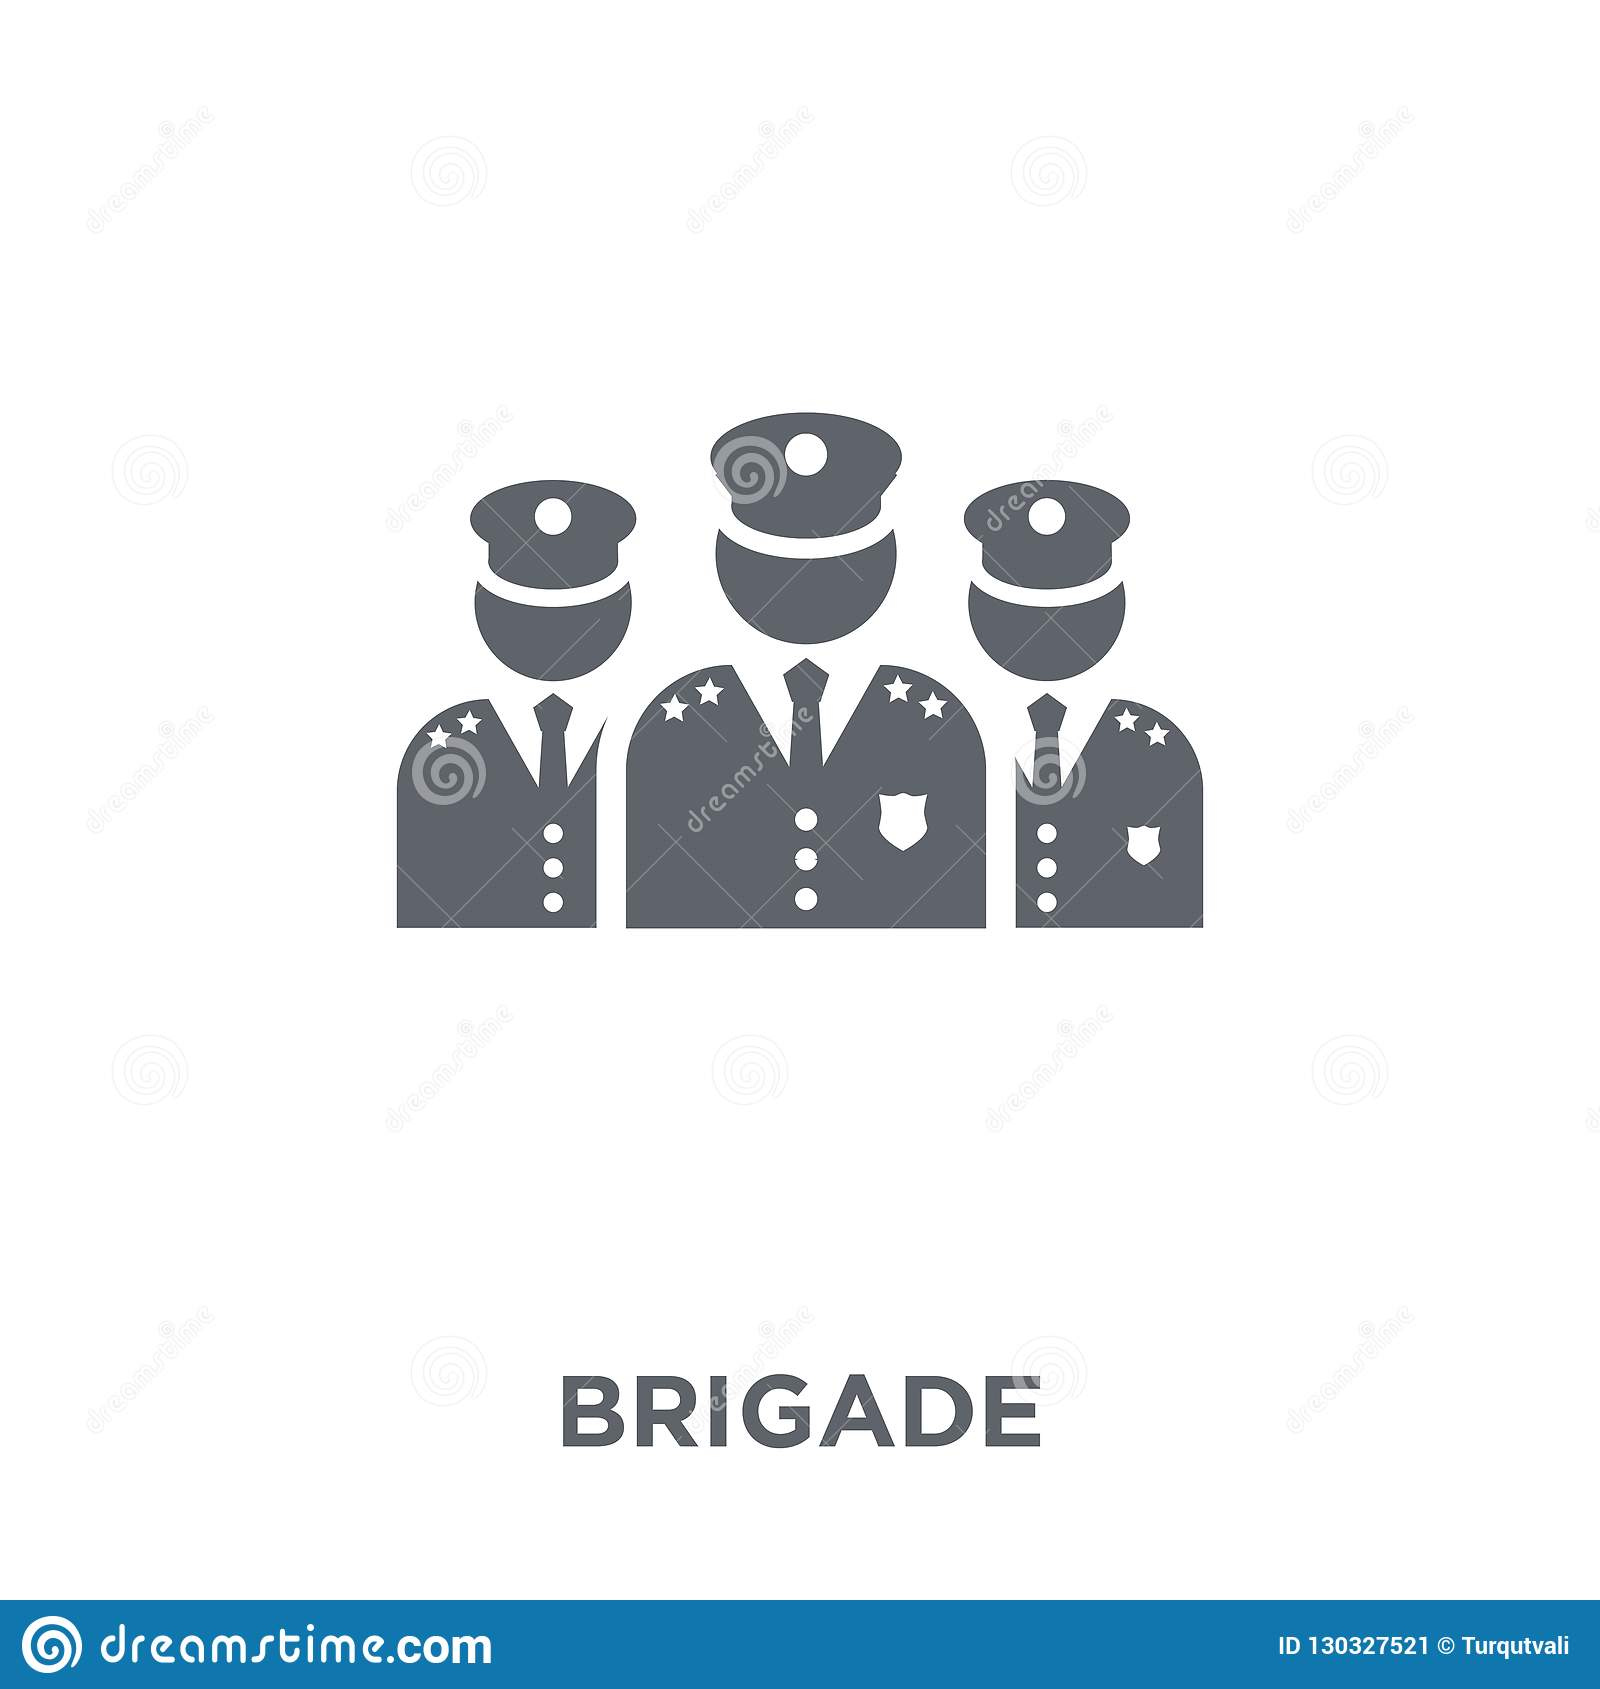 brigade icon from Army collection.